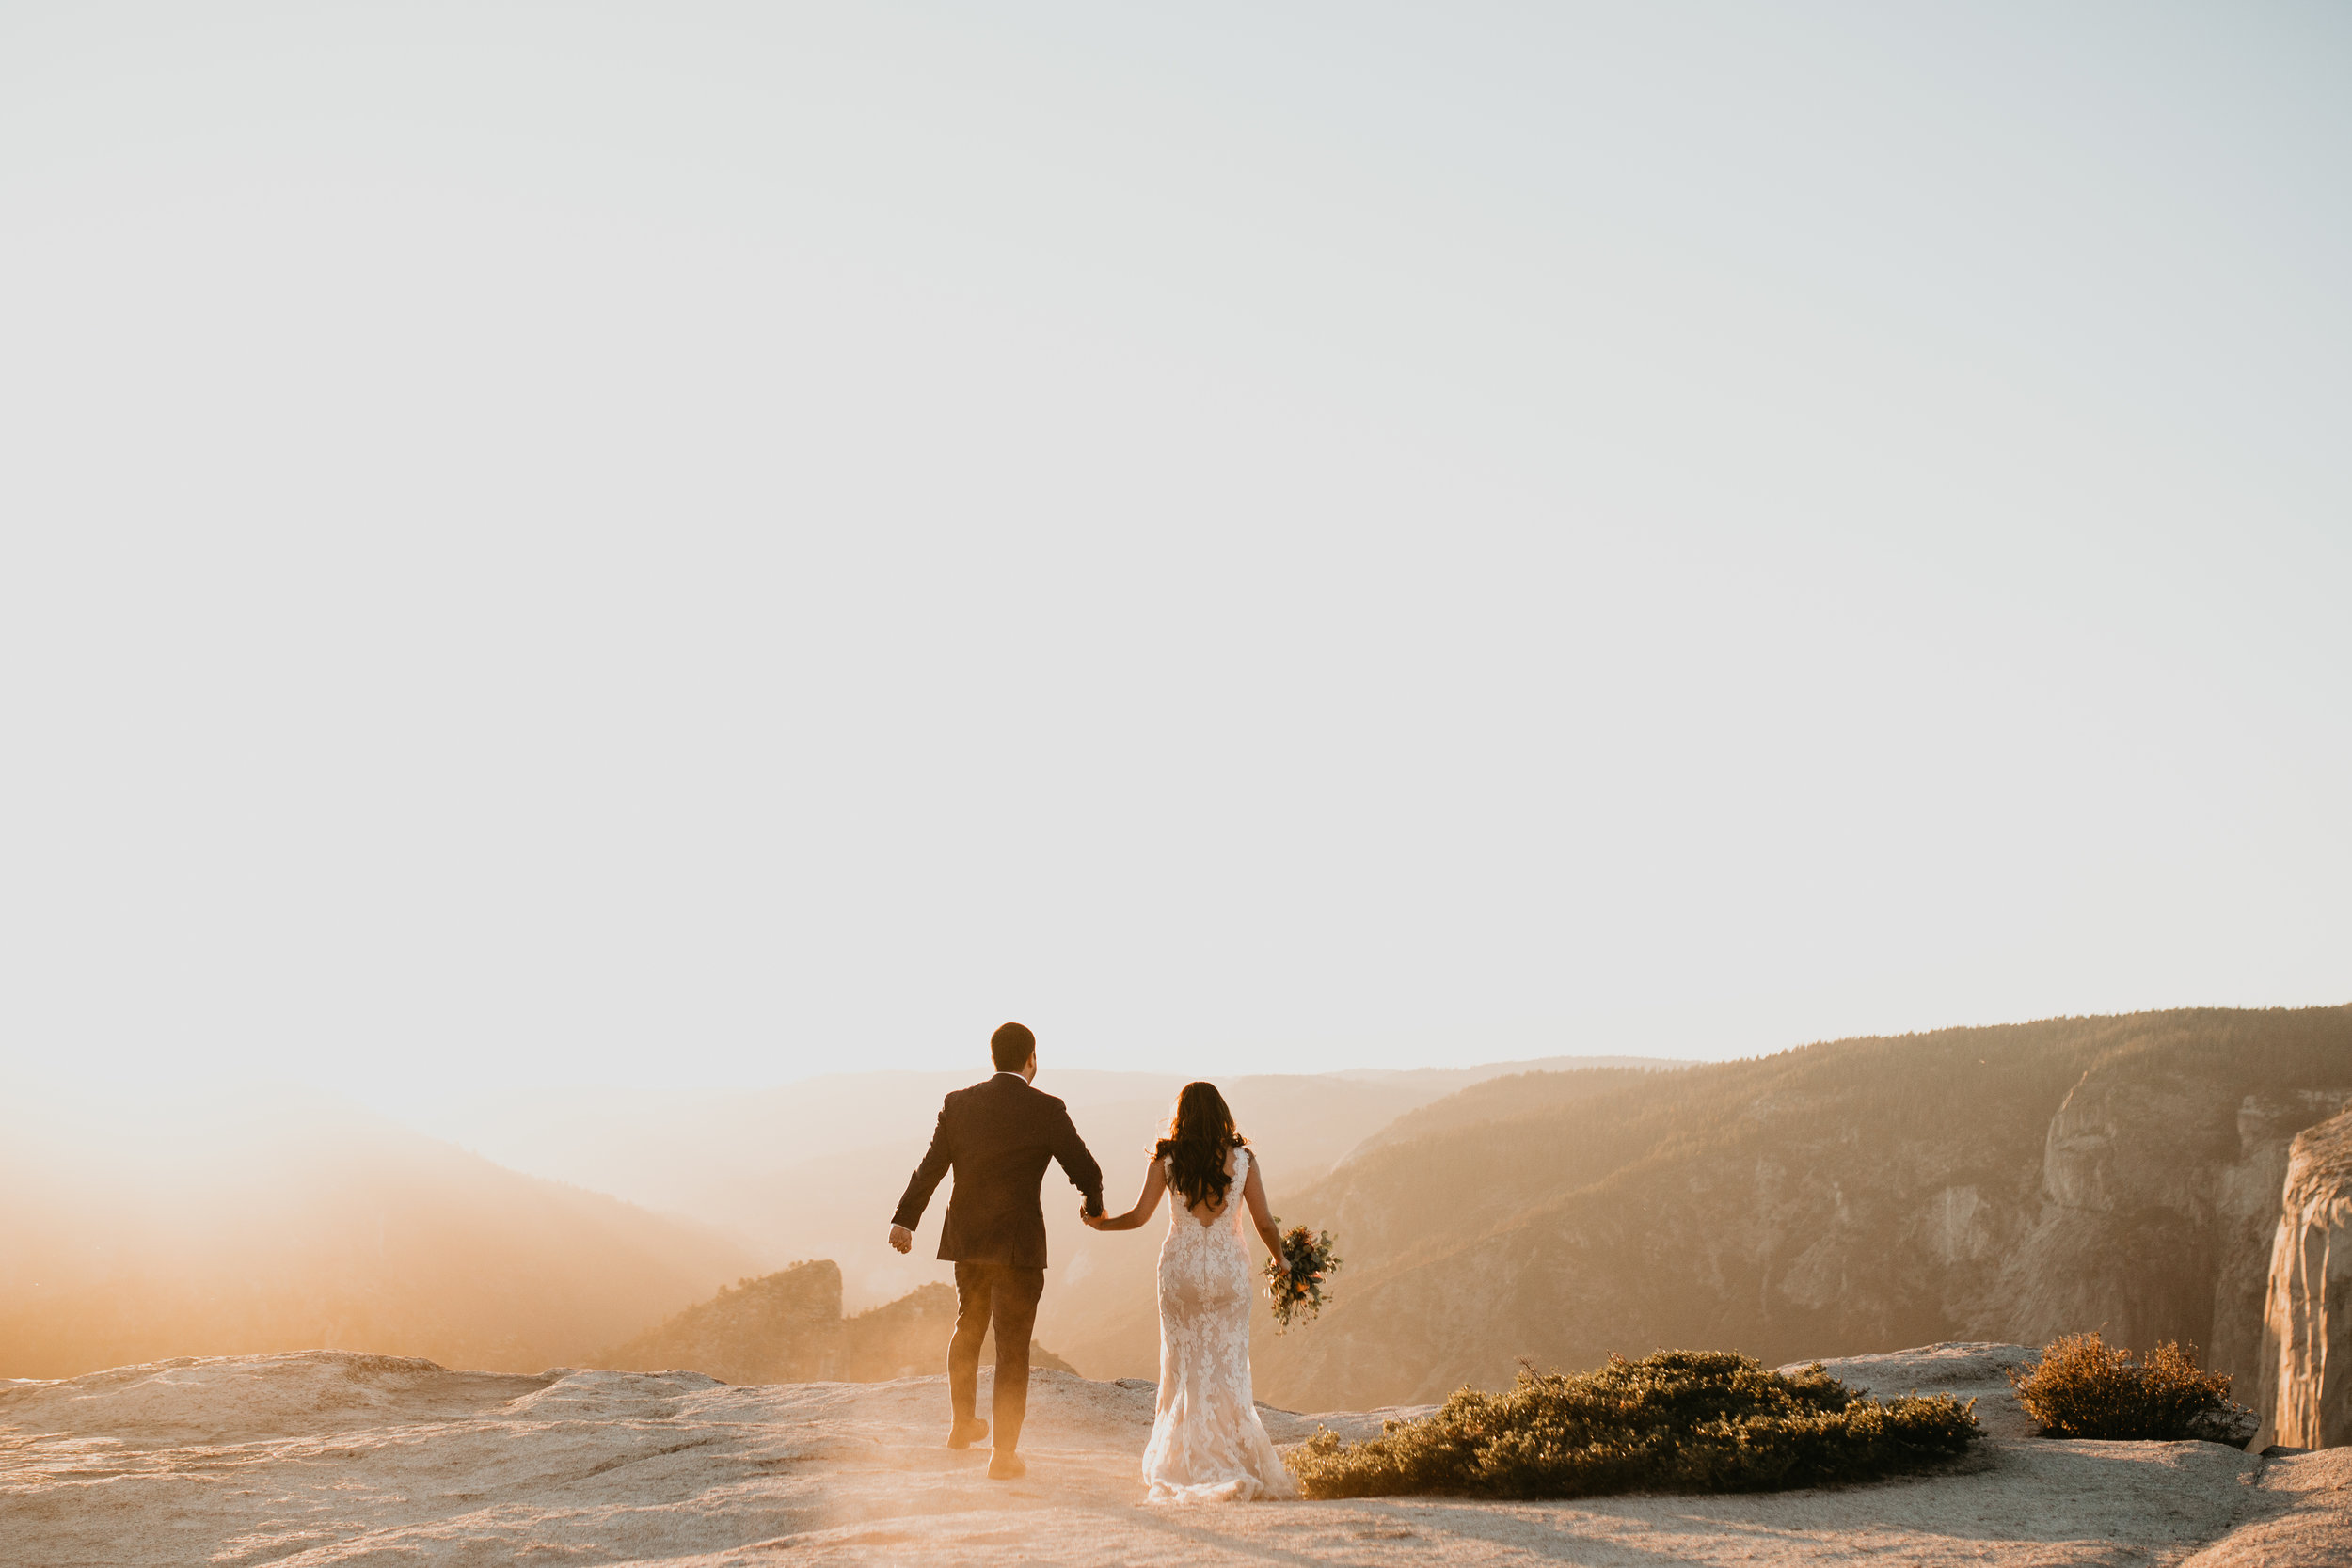 nicole-daacke-photography-intimate-elopement-wedding-yosemite-national-park-california-taft-point-sunset-photos-yosemite-valley-tunnel-view-first-look-sunrise-golden-granite-hiking-adventure-wedding-adventurous-elopement-photographer-109.jpg